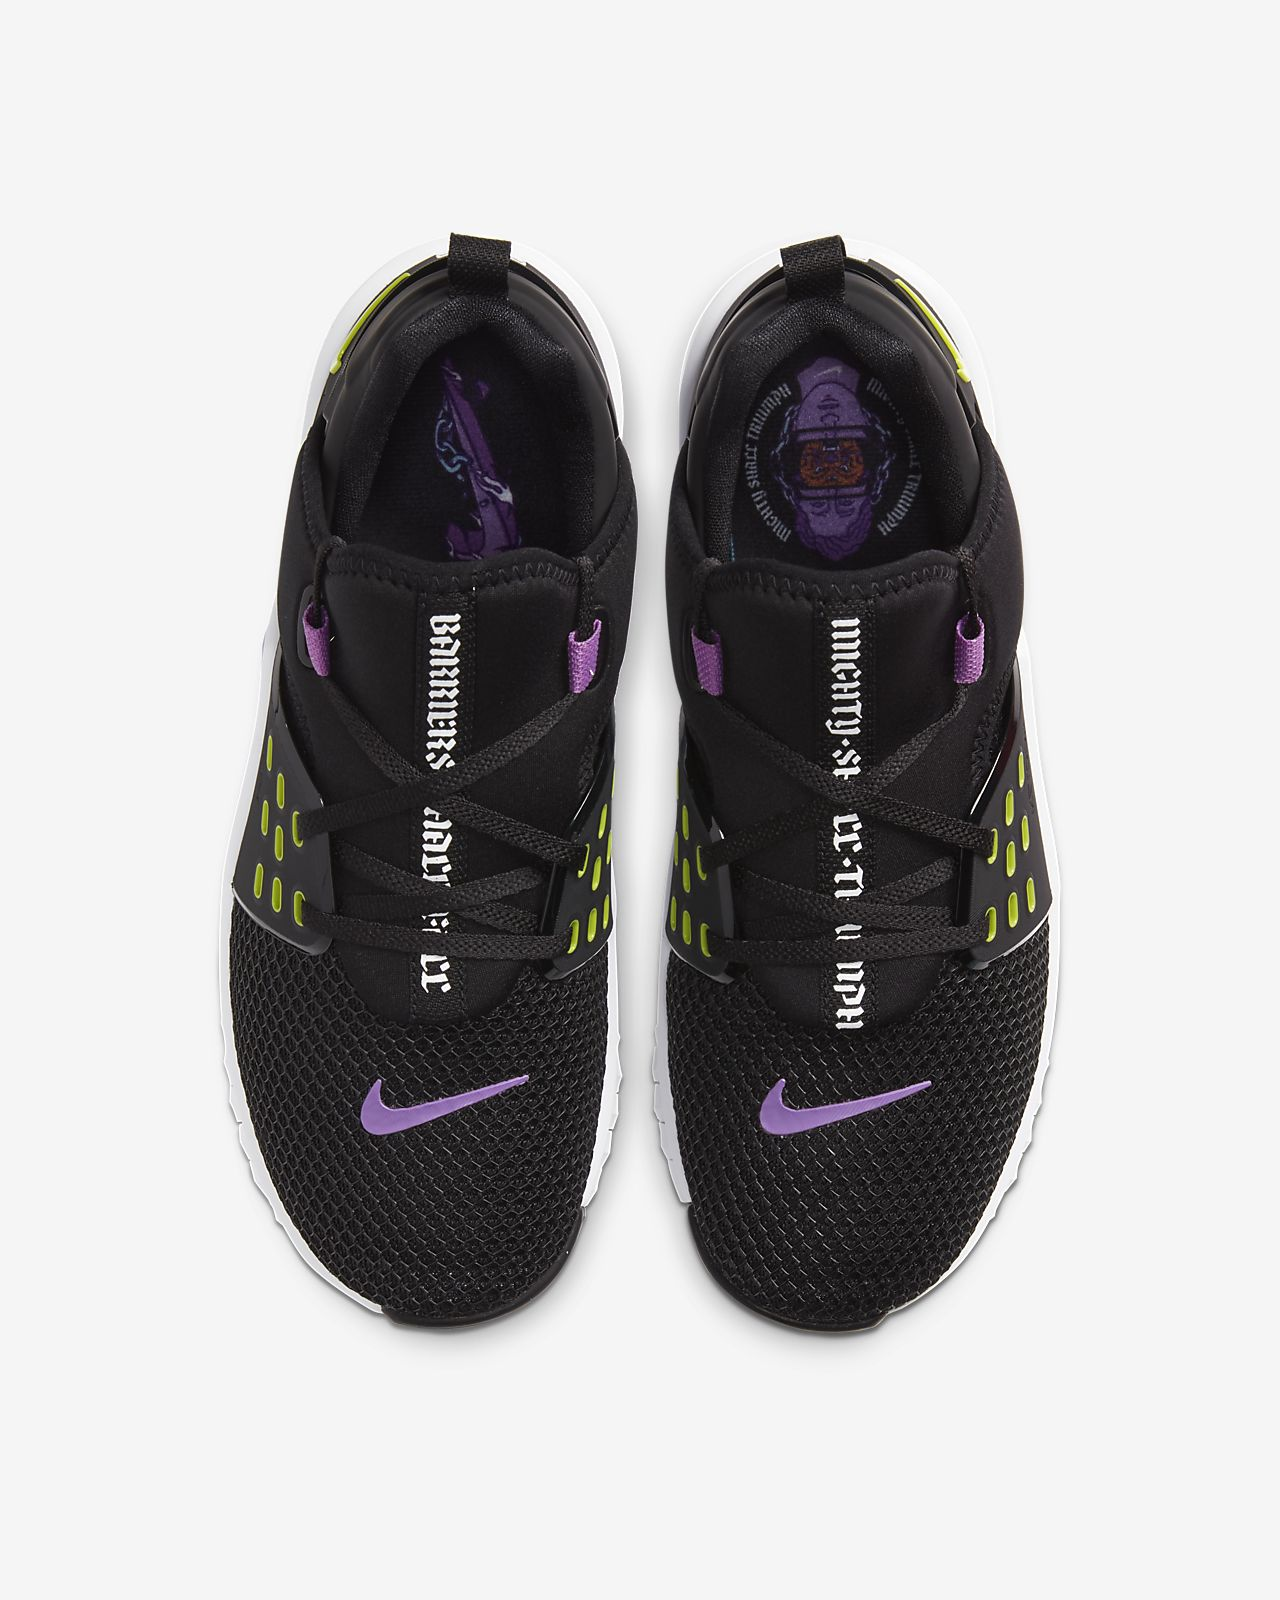 Nike Free RN 5.0 [2 colours] | ON FEET 4x Styles | running shoes | 2019